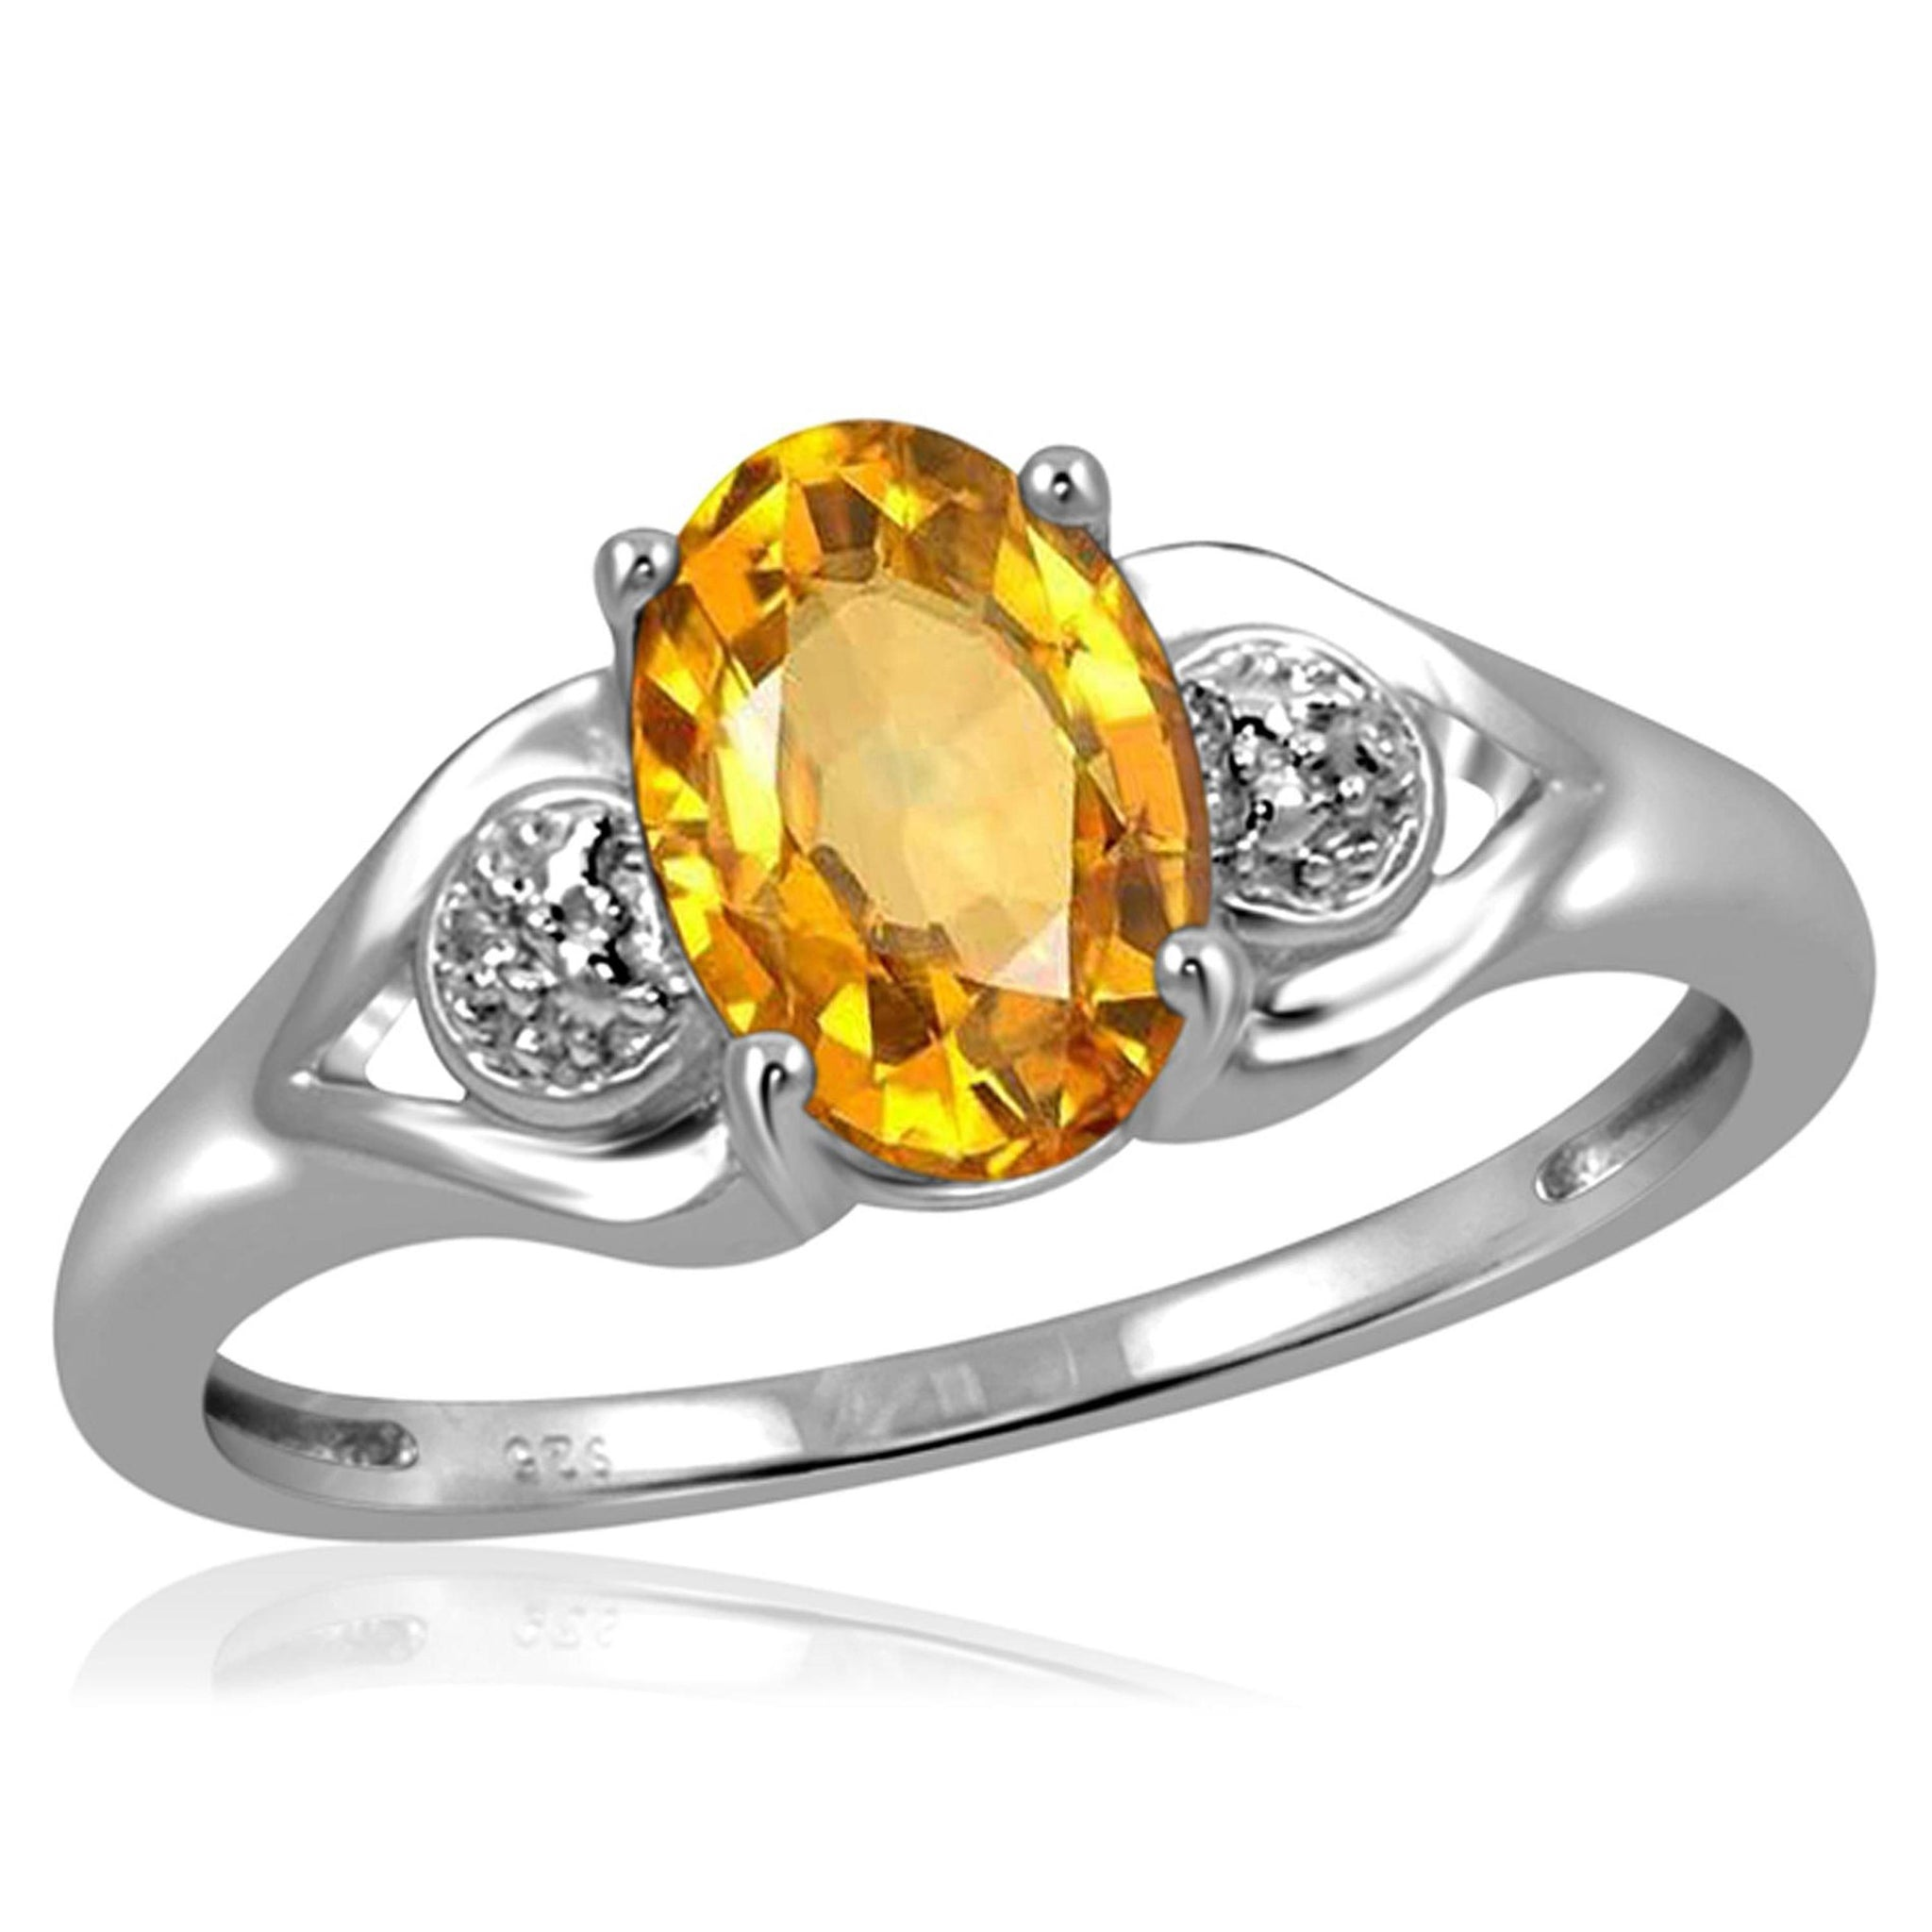 JewelersClub 1.00 Carat T.G.W. Citrine And White Diamond Accent Sterling Silver Ring - Assorted Colors